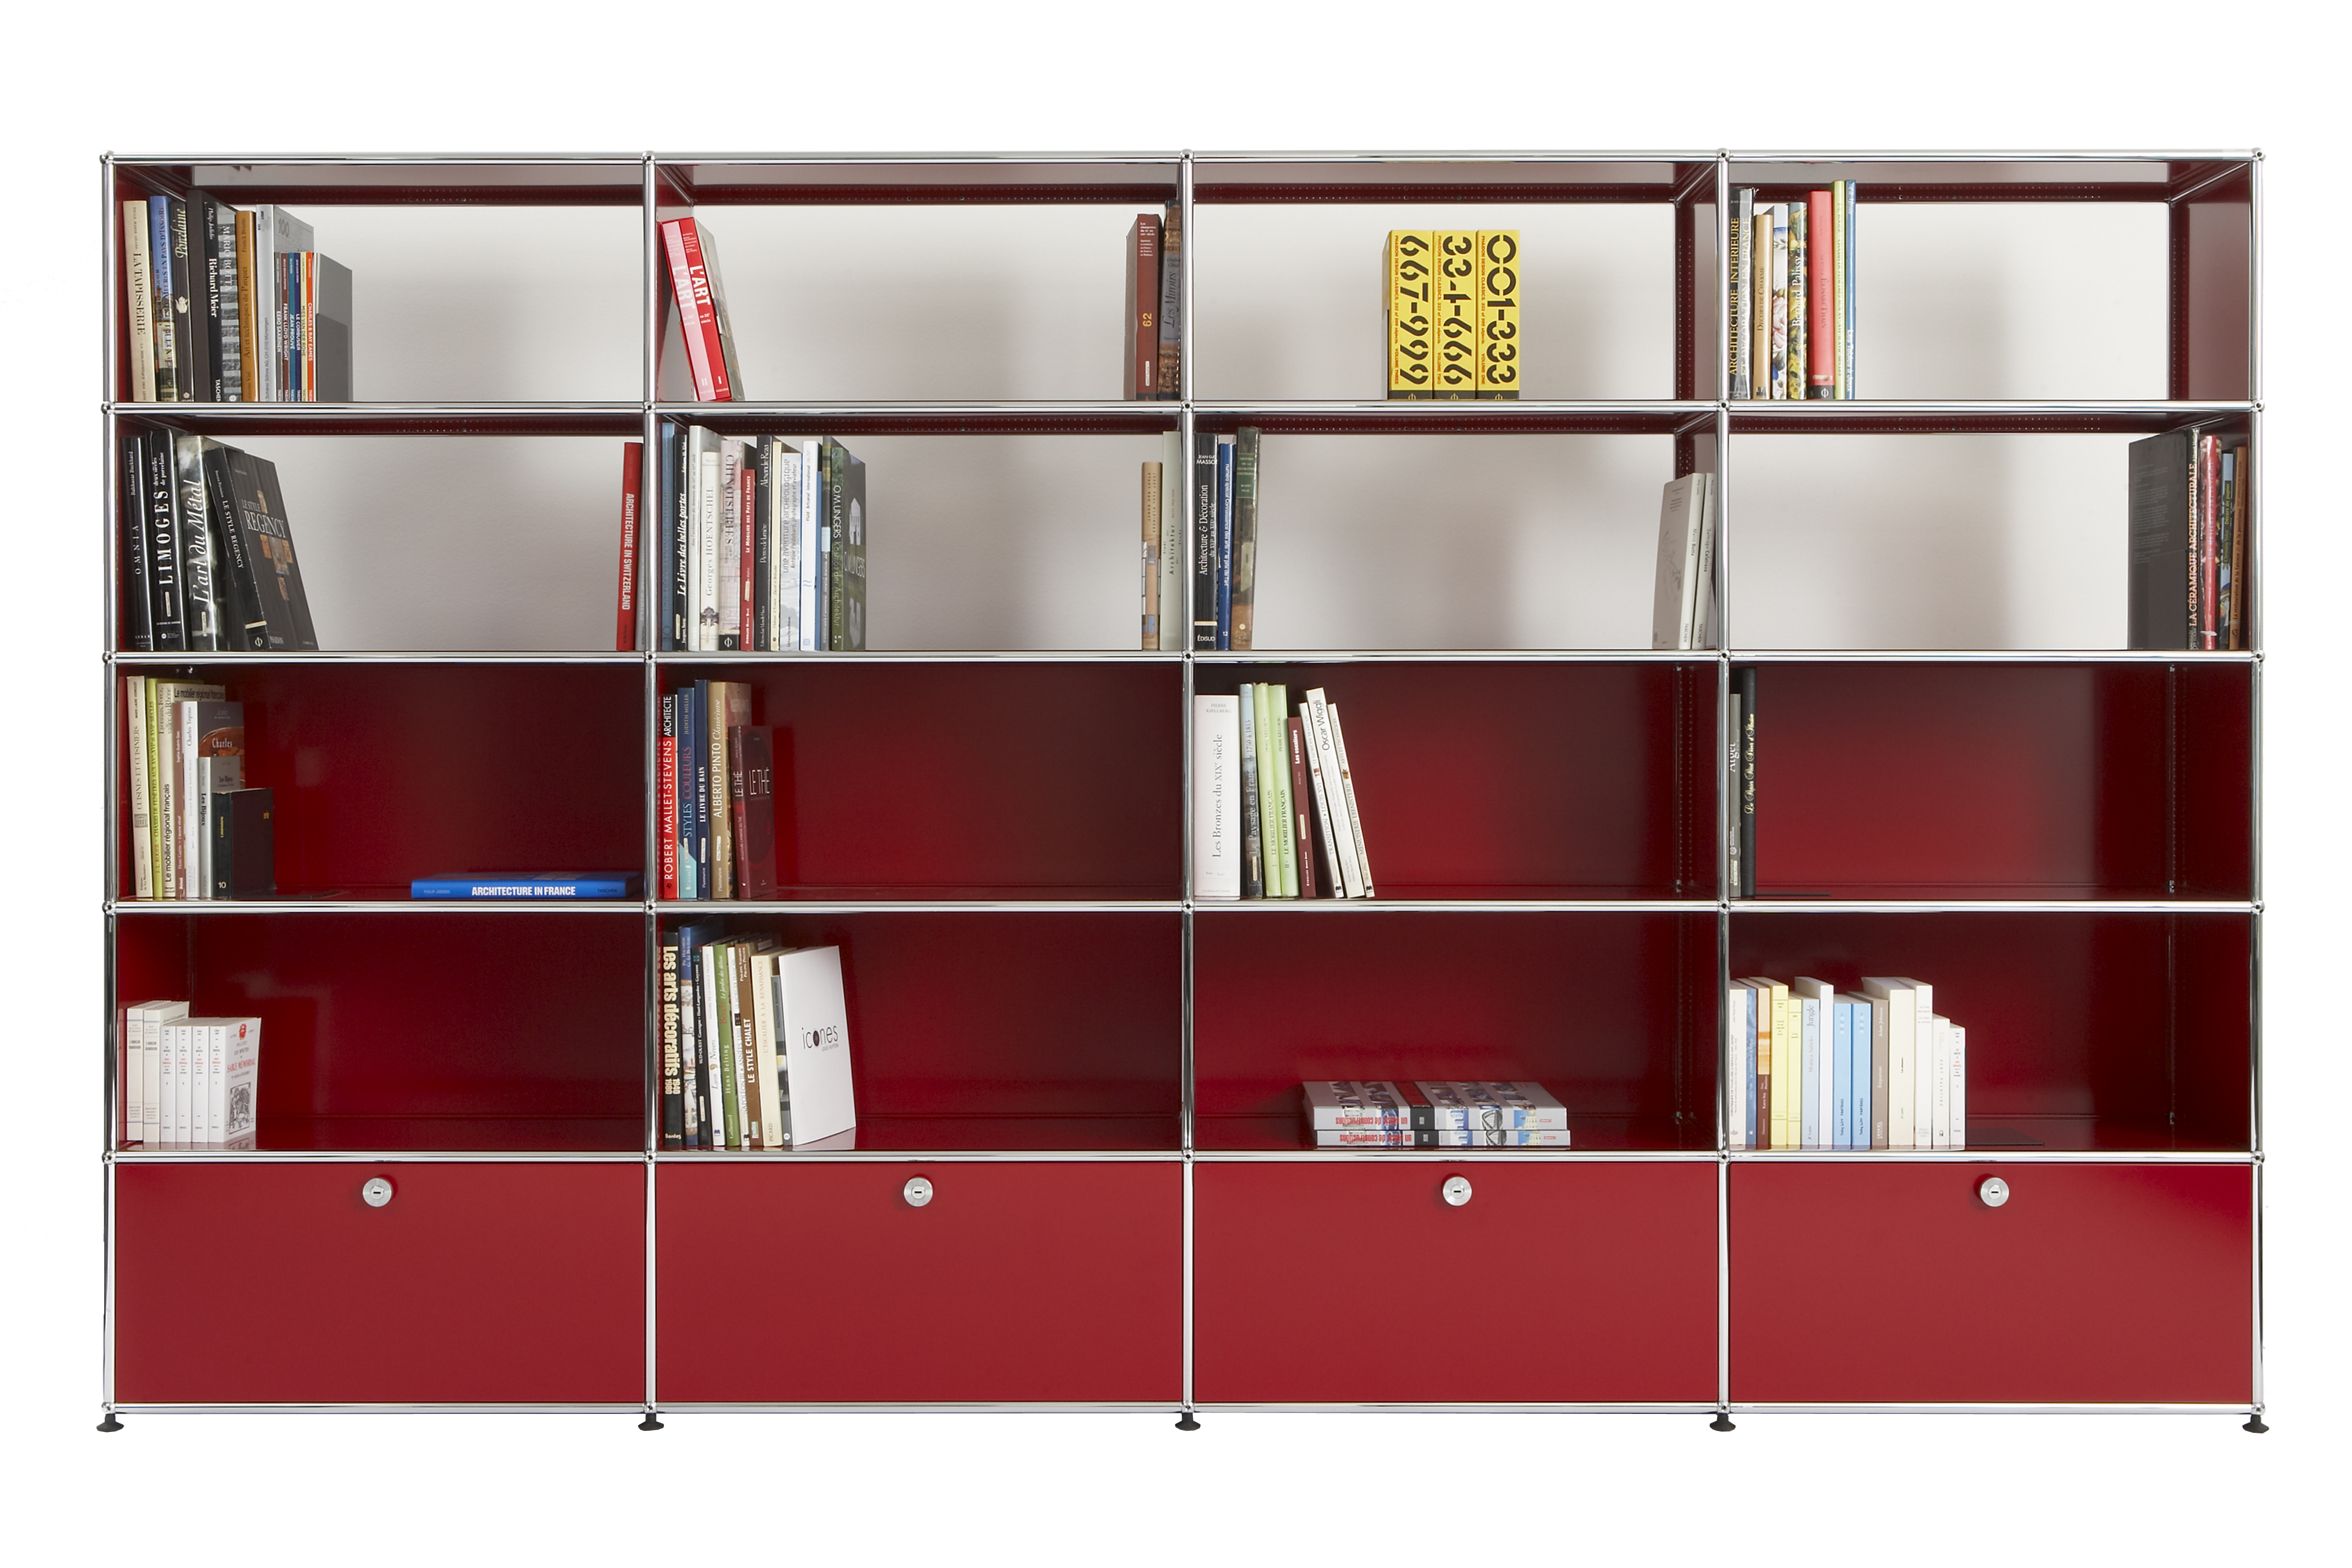 Modular Bedroom Furniture Systems Usm Haller The Reigning Champ Of Modular Furniture Curbed